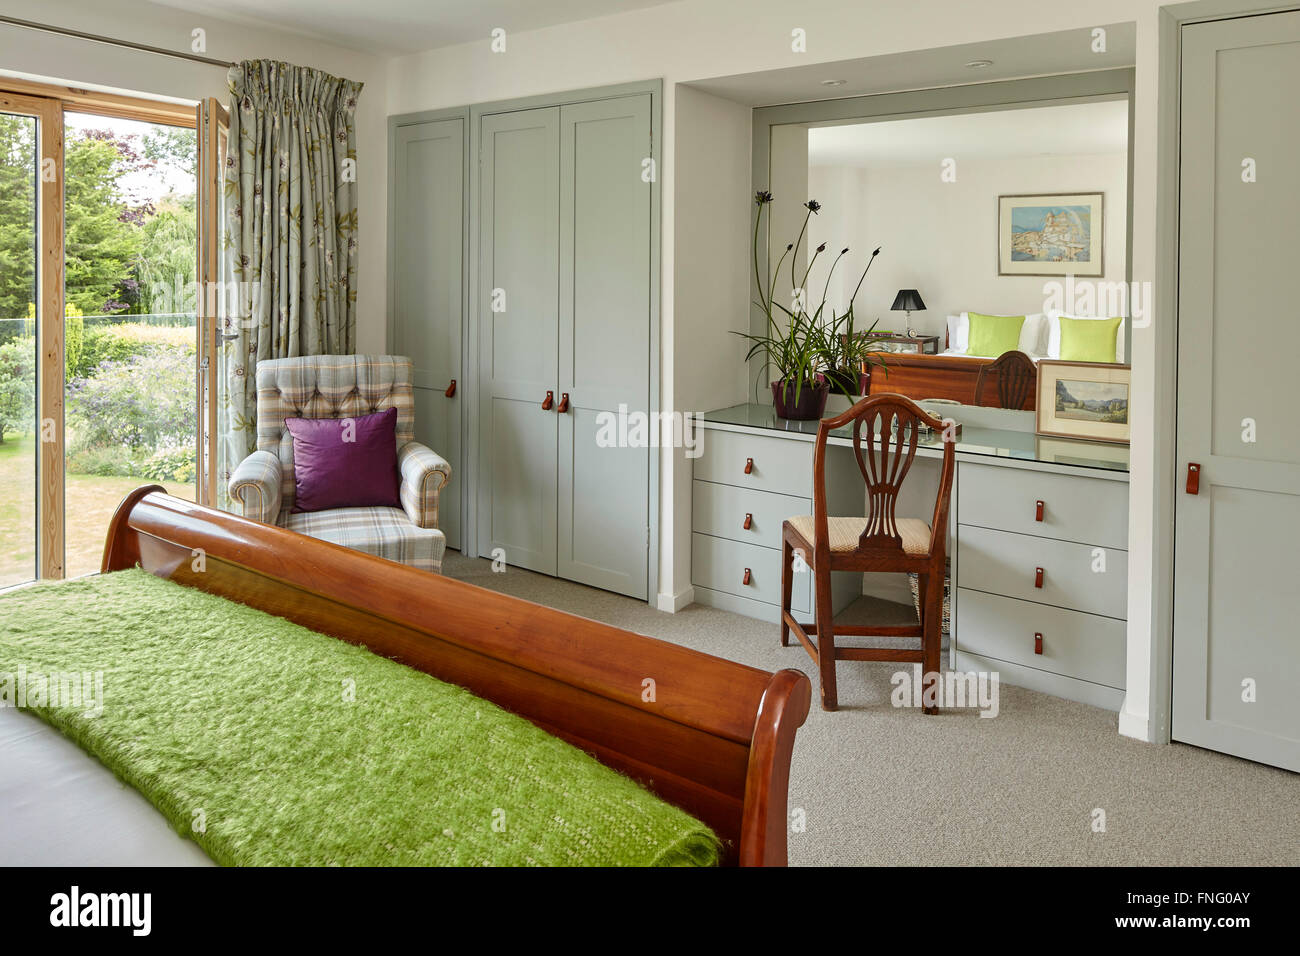 Bedroom Dressing Table Built In With Mirror Reflecting Sleigh Bed And  Window. Mill